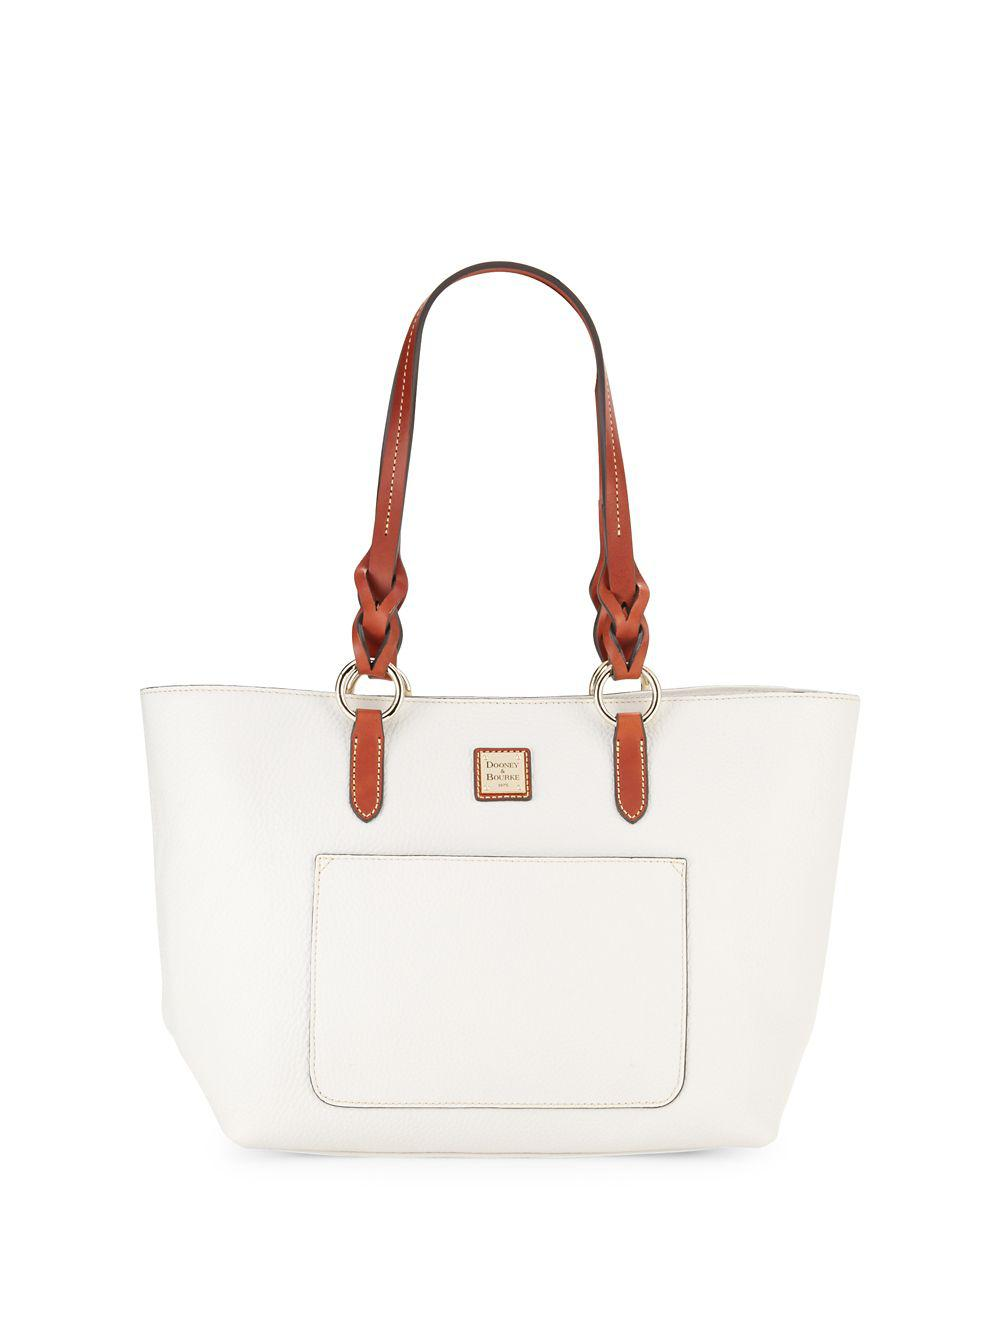 a115da99d Lyst - Dooney & Bourke Tammy Leather Tote